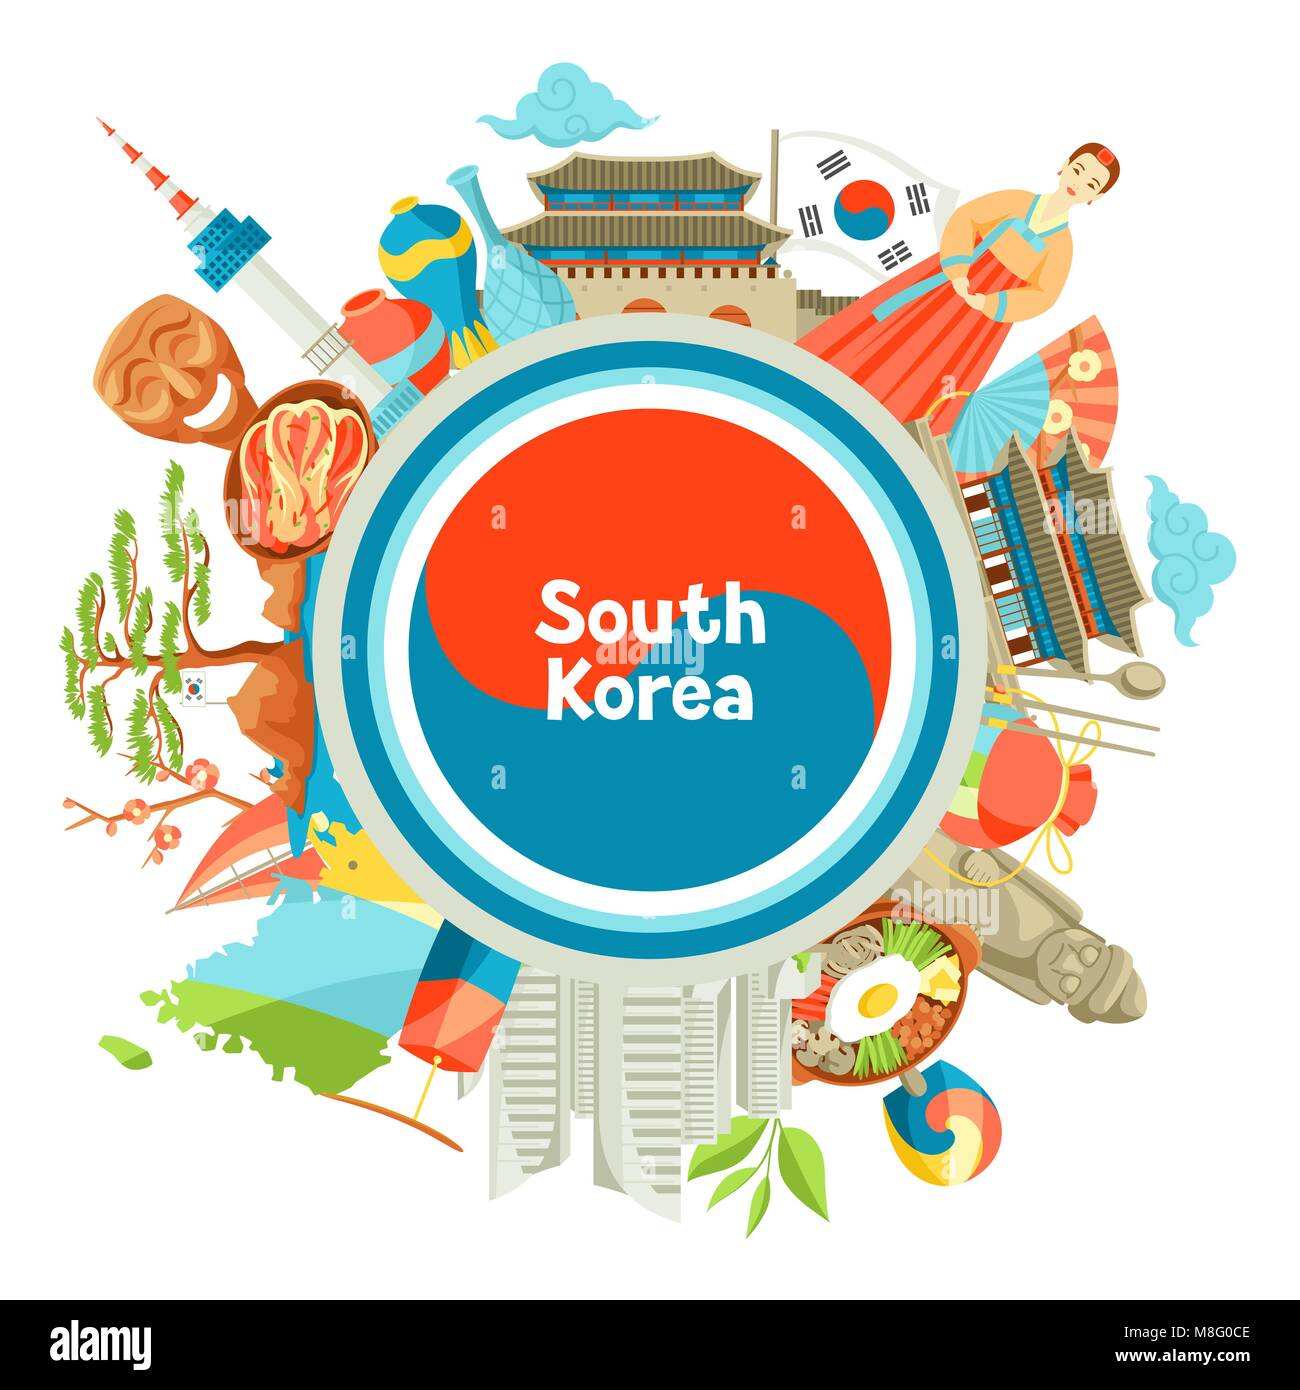 South korean culture cut out stock images pictures alamy south korea background design korean traditional symbols and objects stock image biocorpaavc Image collections